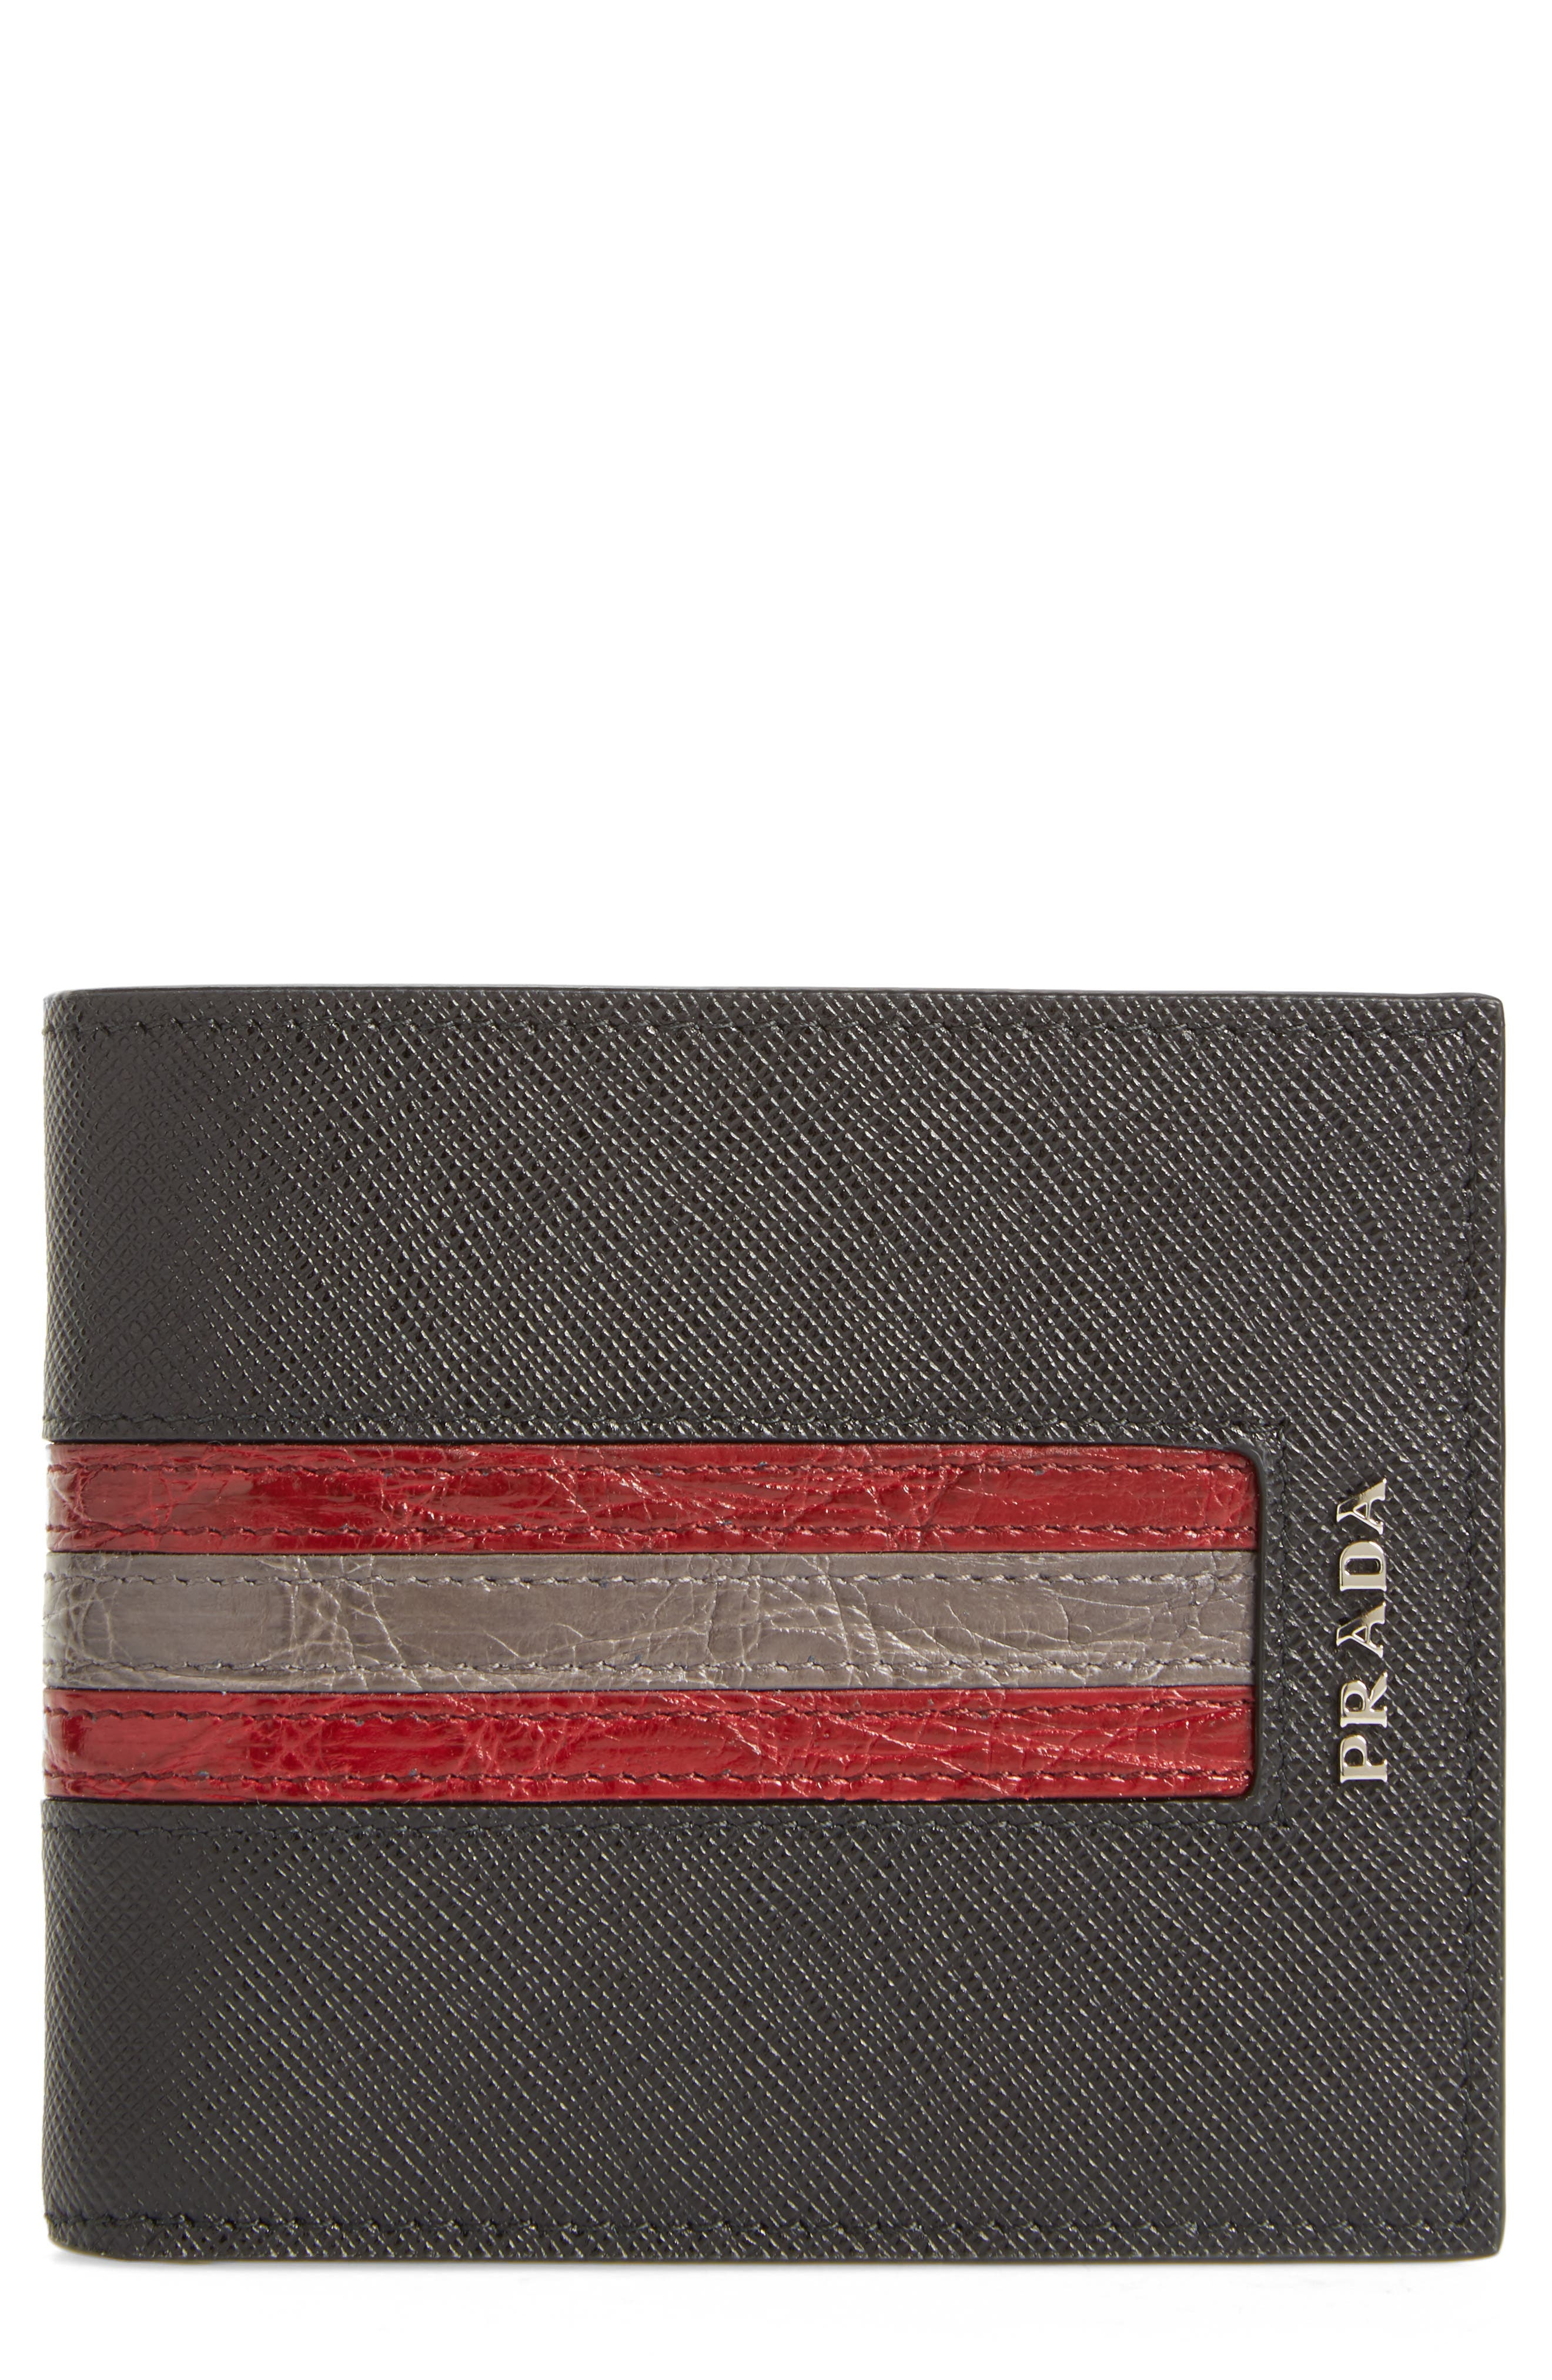 Saffiano and Crocodile Leather Wallet,                             Main thumbnail 1, color,                             004